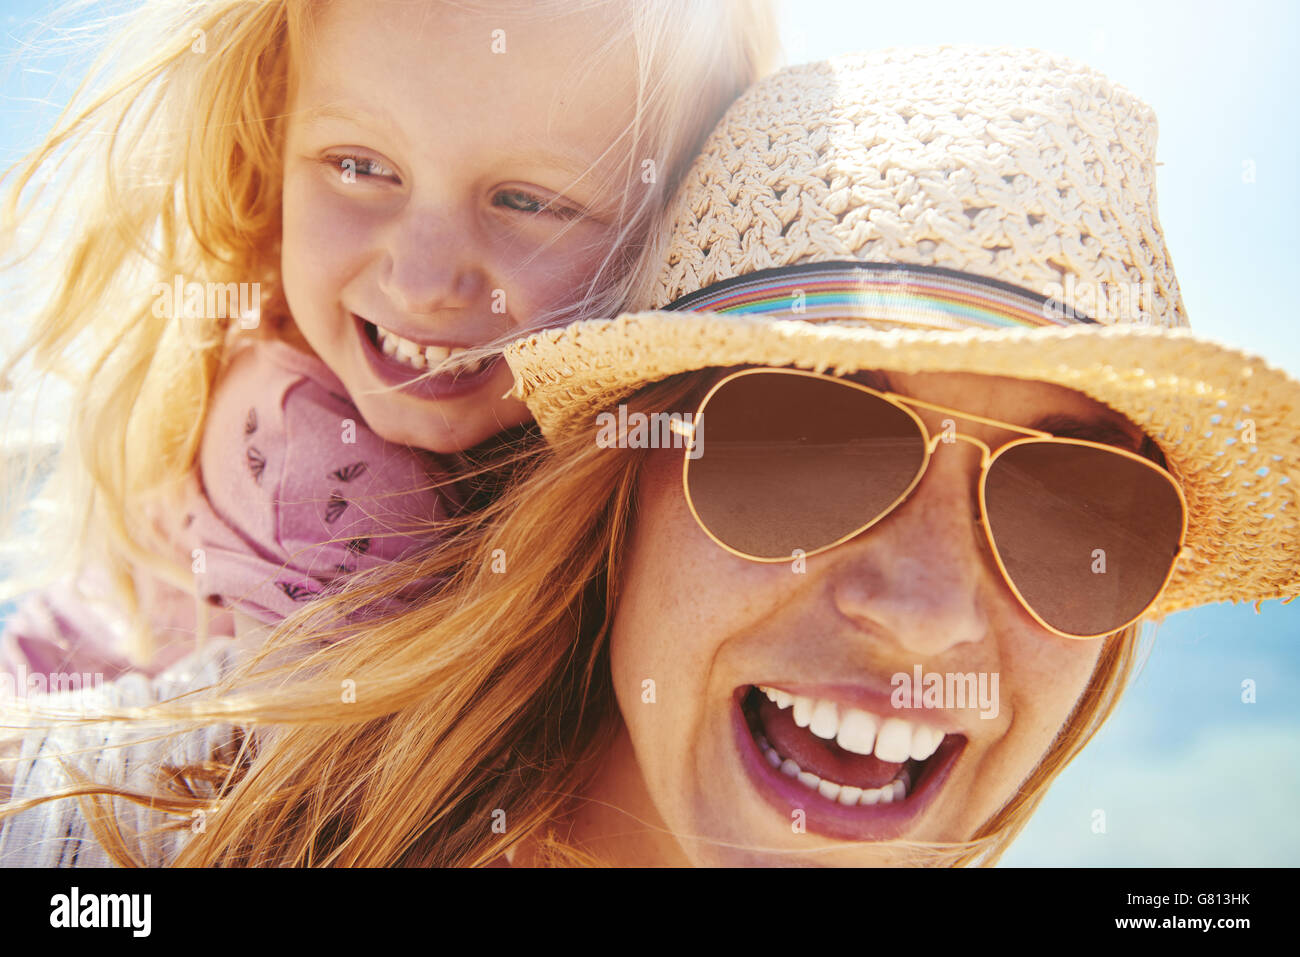 Laughing young mother in a trendy hat and sunglasses giving her little daughter a piggy back outdoors in the summer - Stock Image